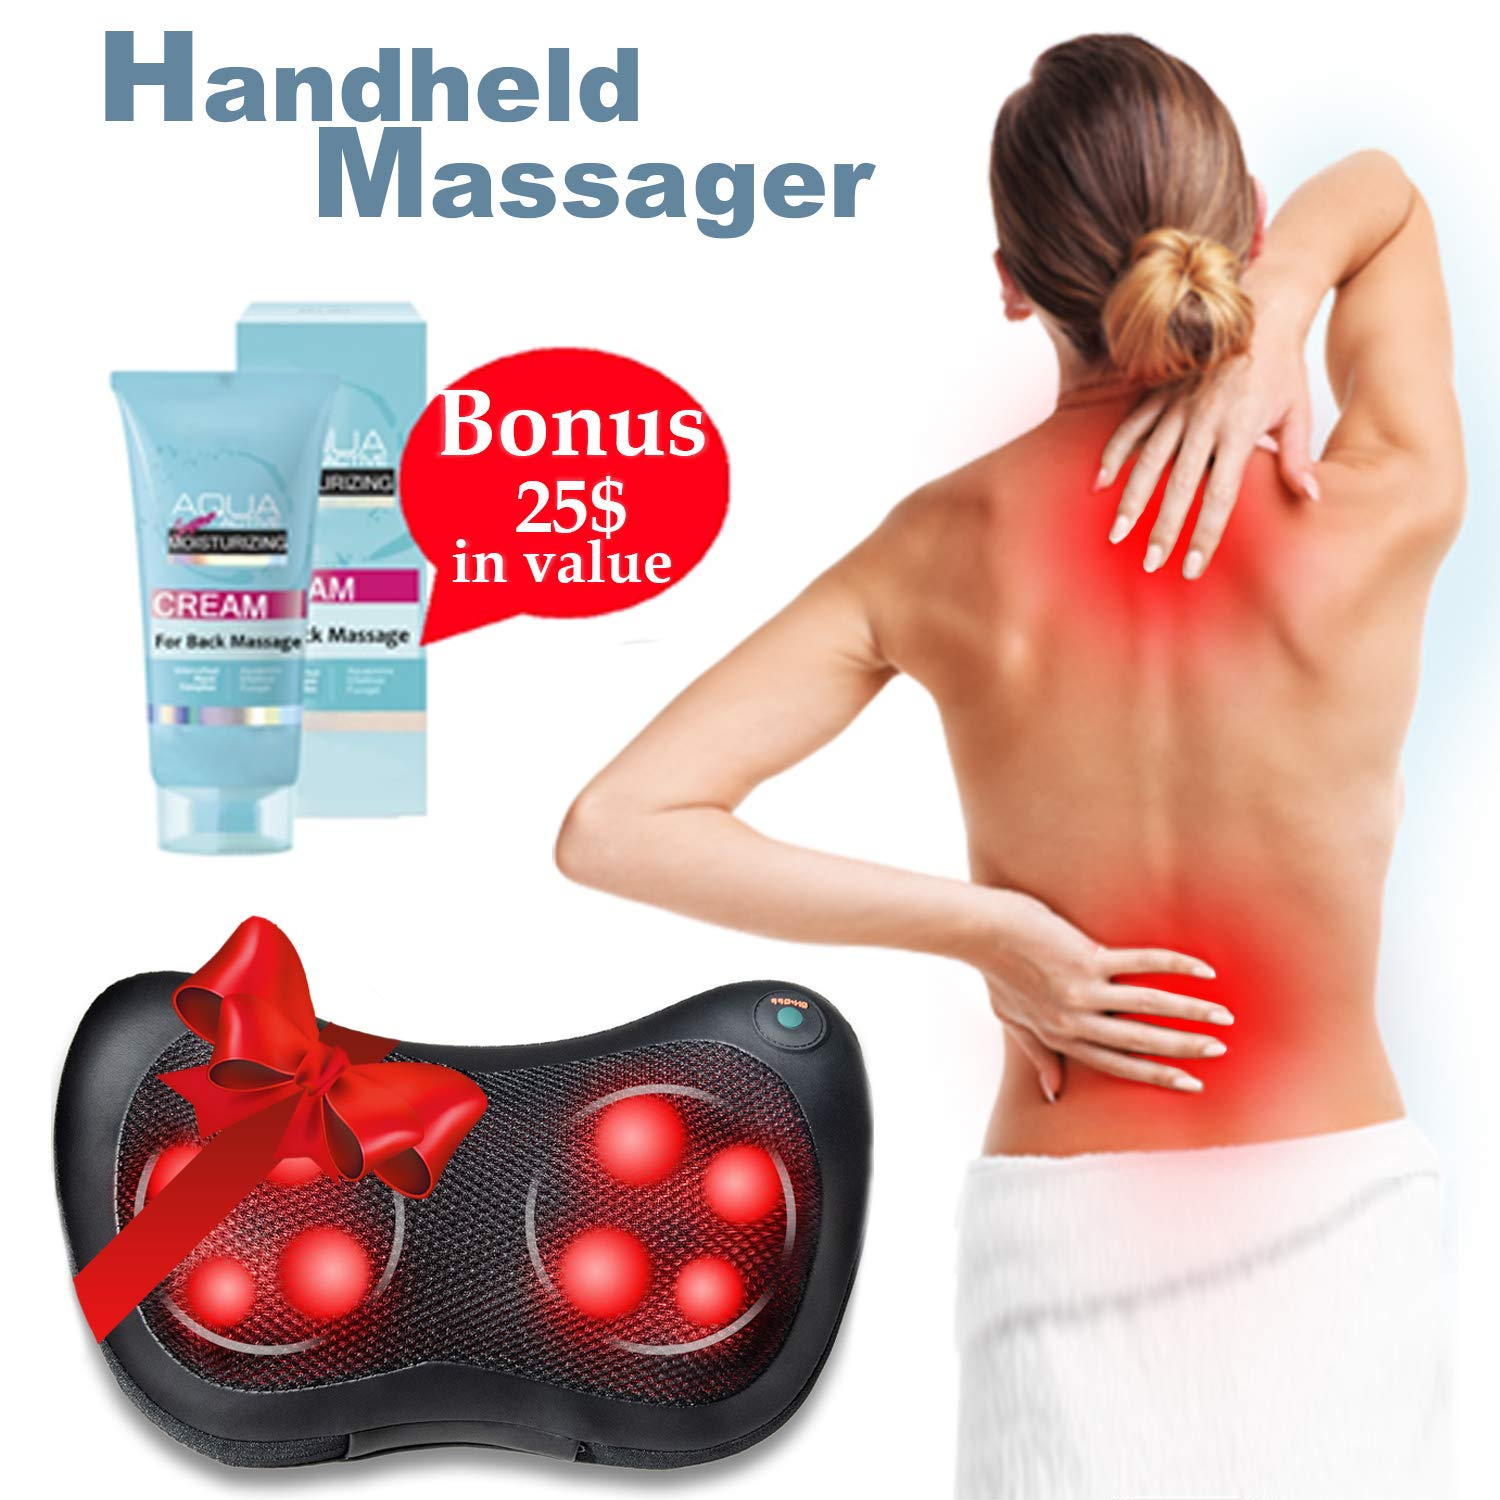 Relieve Muscle Pain With Shiatsu Massager Heating Massaging Pillow With 8 Massage Nods Full Body Massage Cushion For Home, Office, Car, Travel, Neck And Back Pain Relief +European Massage Cream+E-Book